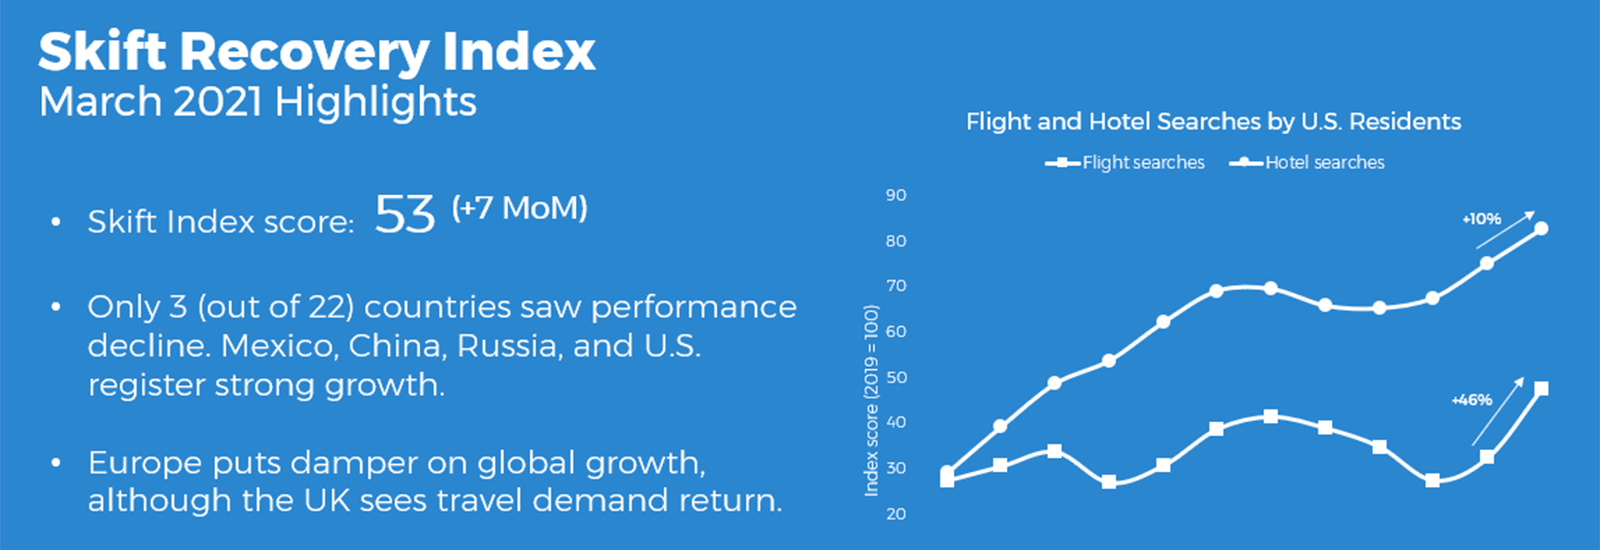 Skift Recovery Index March 2021